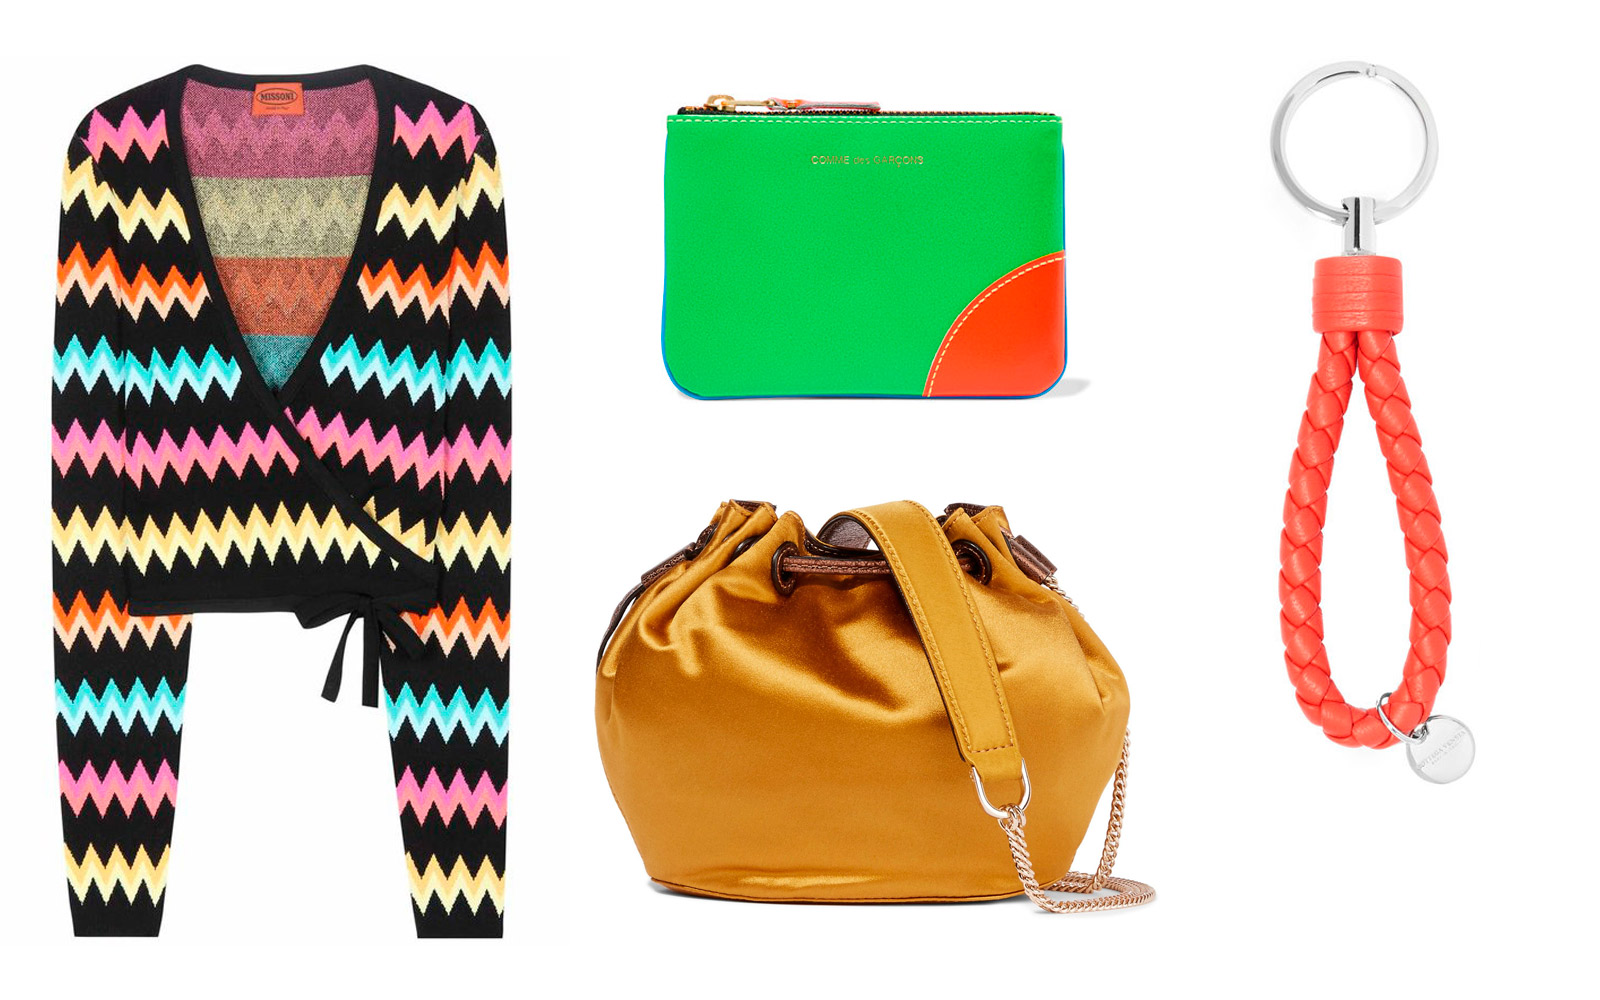 Designer items: Knitted sweater, bag, wallet, keychain